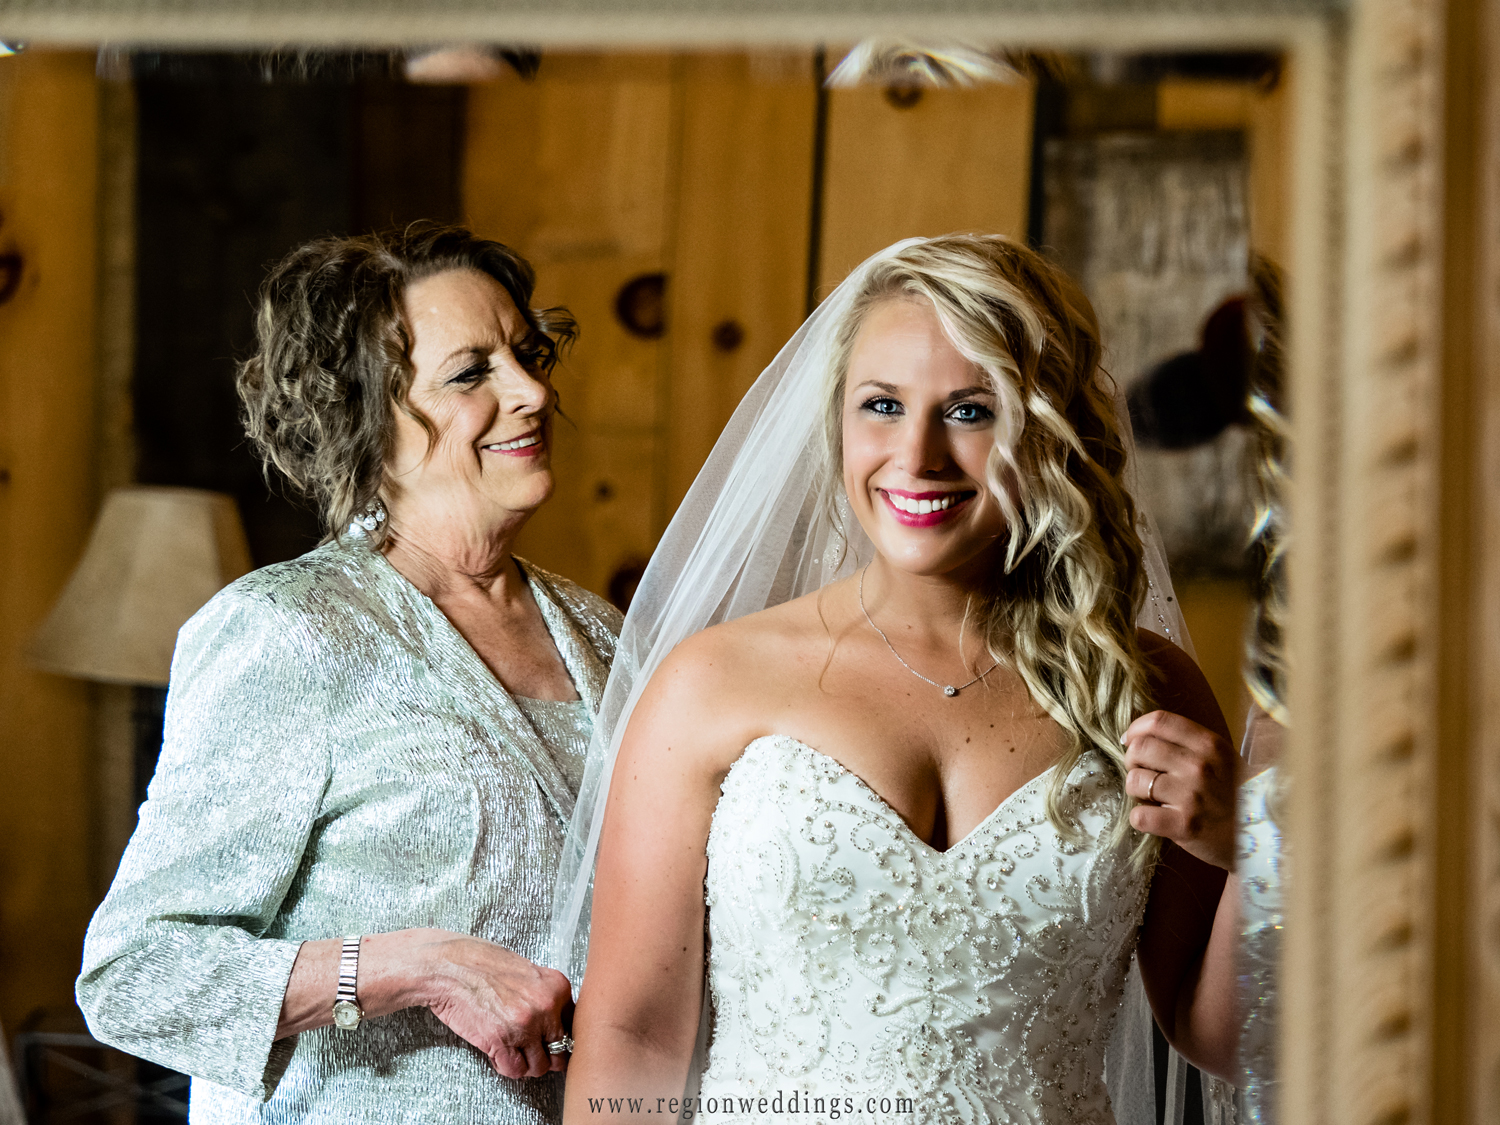 Mom helps her daughter on wedding day with her dress and veil.